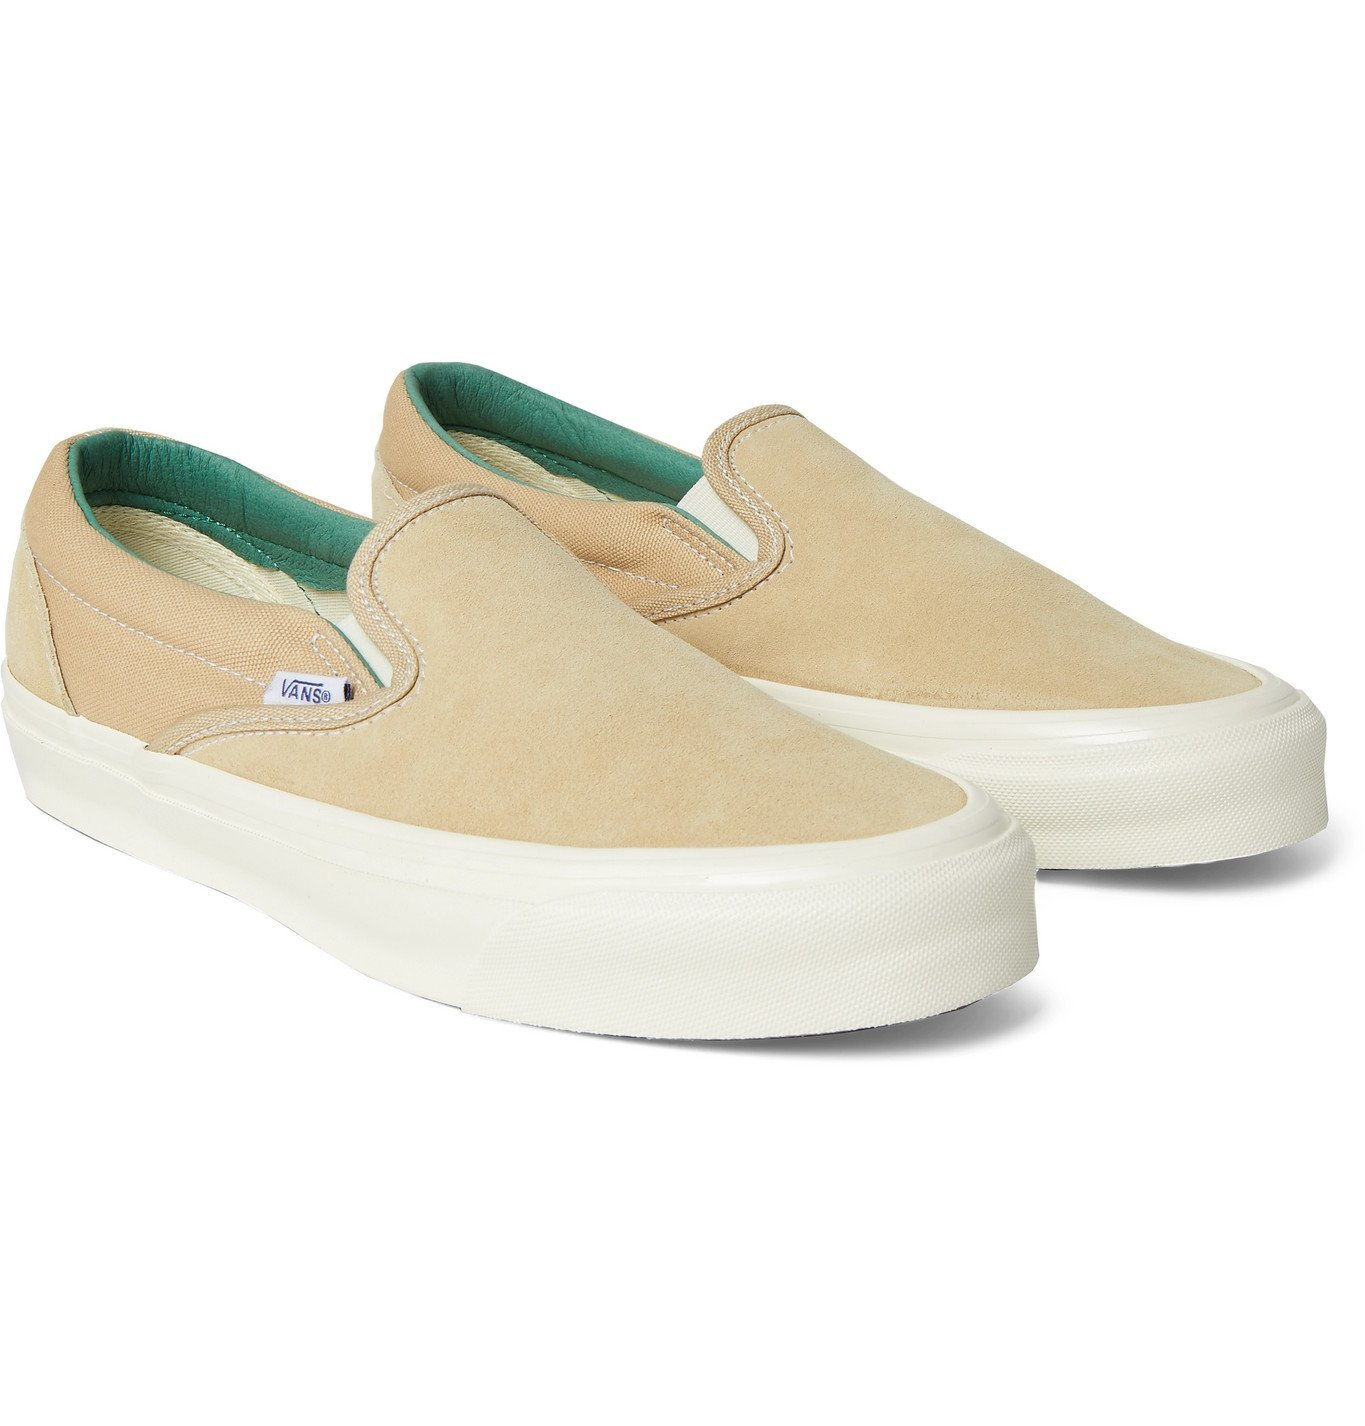 Photo: Vans - OG Classic LX Suede and Canvas Slip-On Sneakers - Neutrals